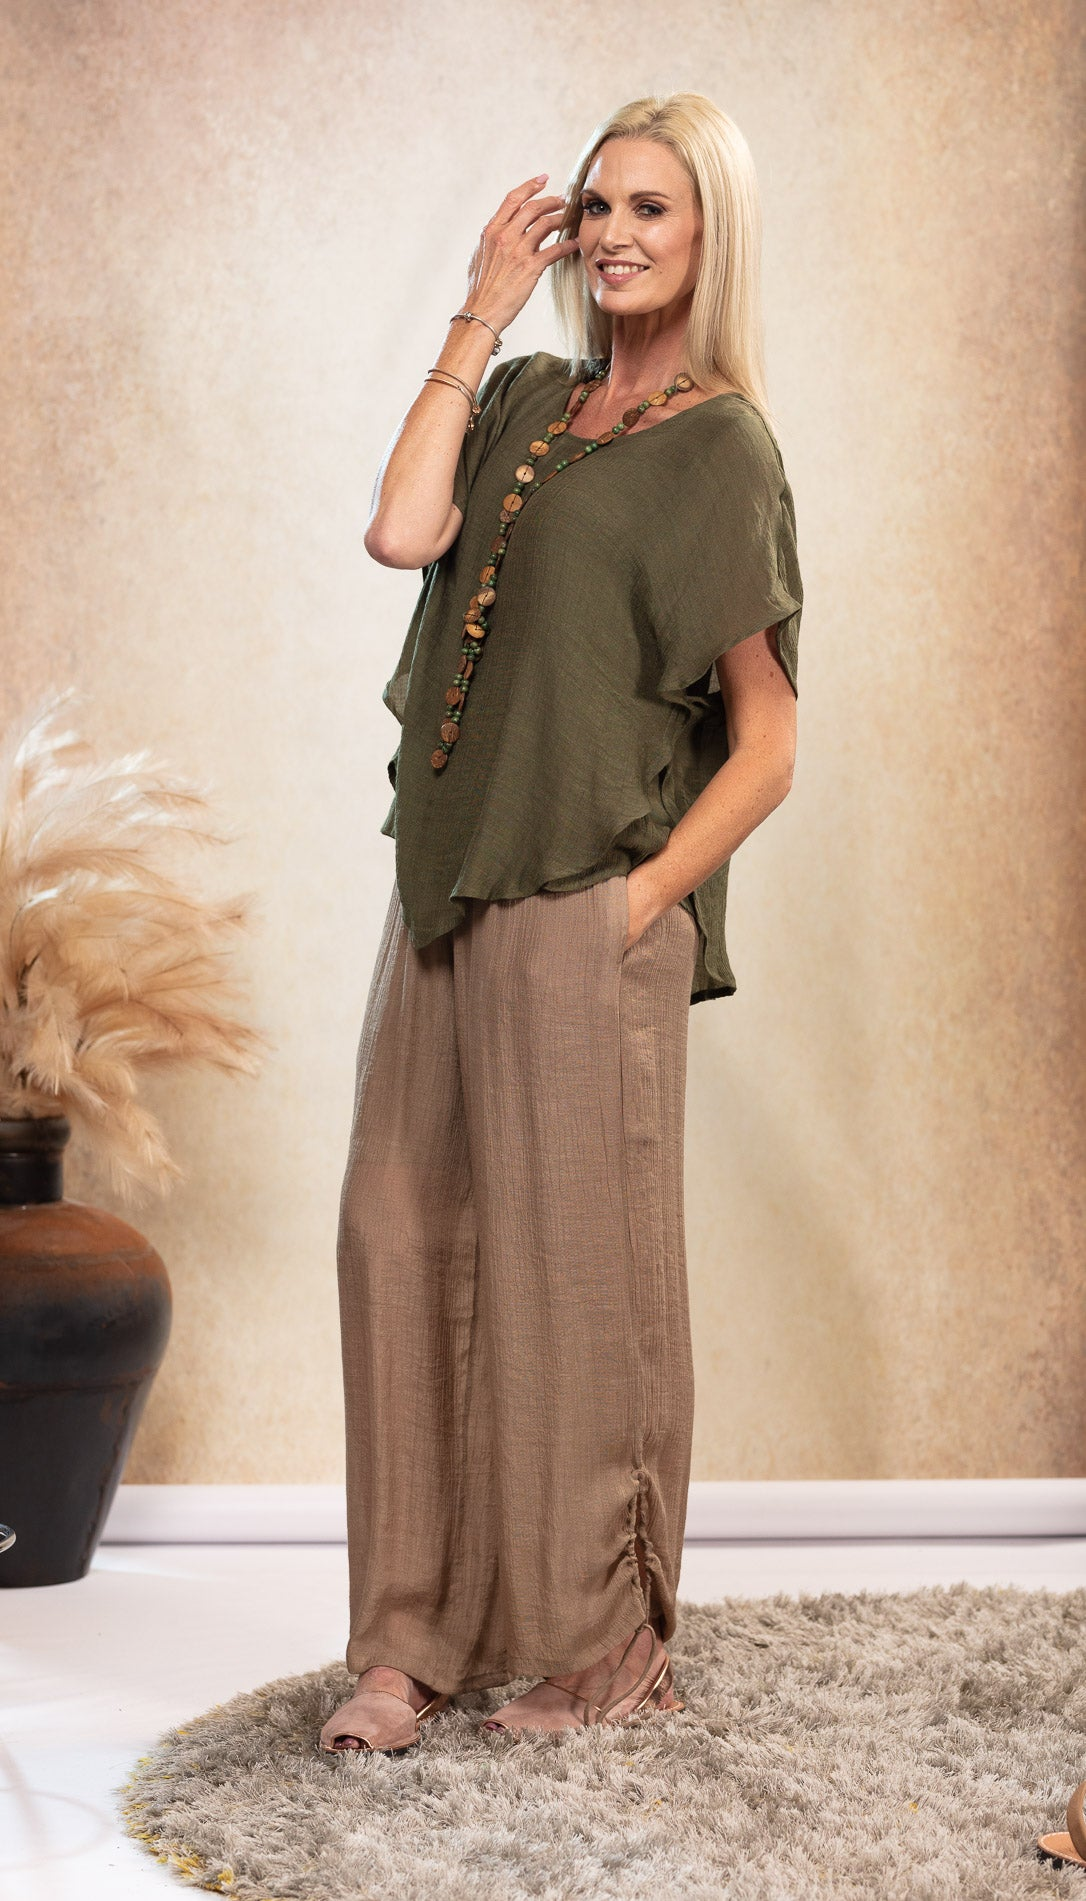 Bamboo Top earthy Olive Khaki Green colour. Bamboo Top with sleeve. Beige long bamboo pants. Harem pants. Bamboo Pants with pockets. Natural coloured shoes. Nude colour Avarca sandals.